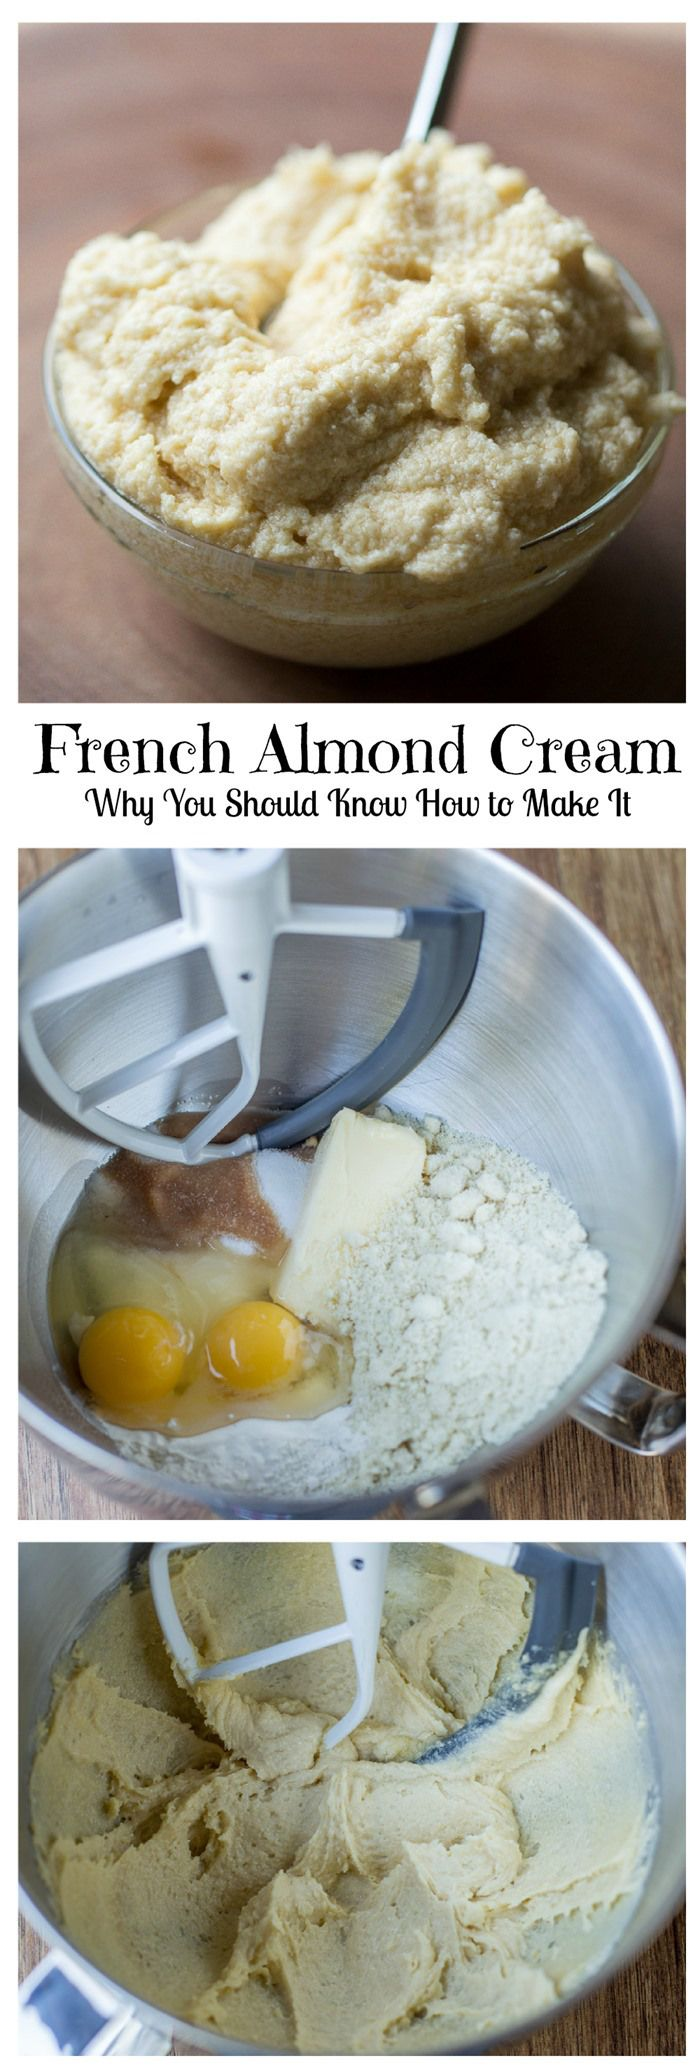 French Almond Cream (creme D'amandes) & Why You Should Know How To Make It